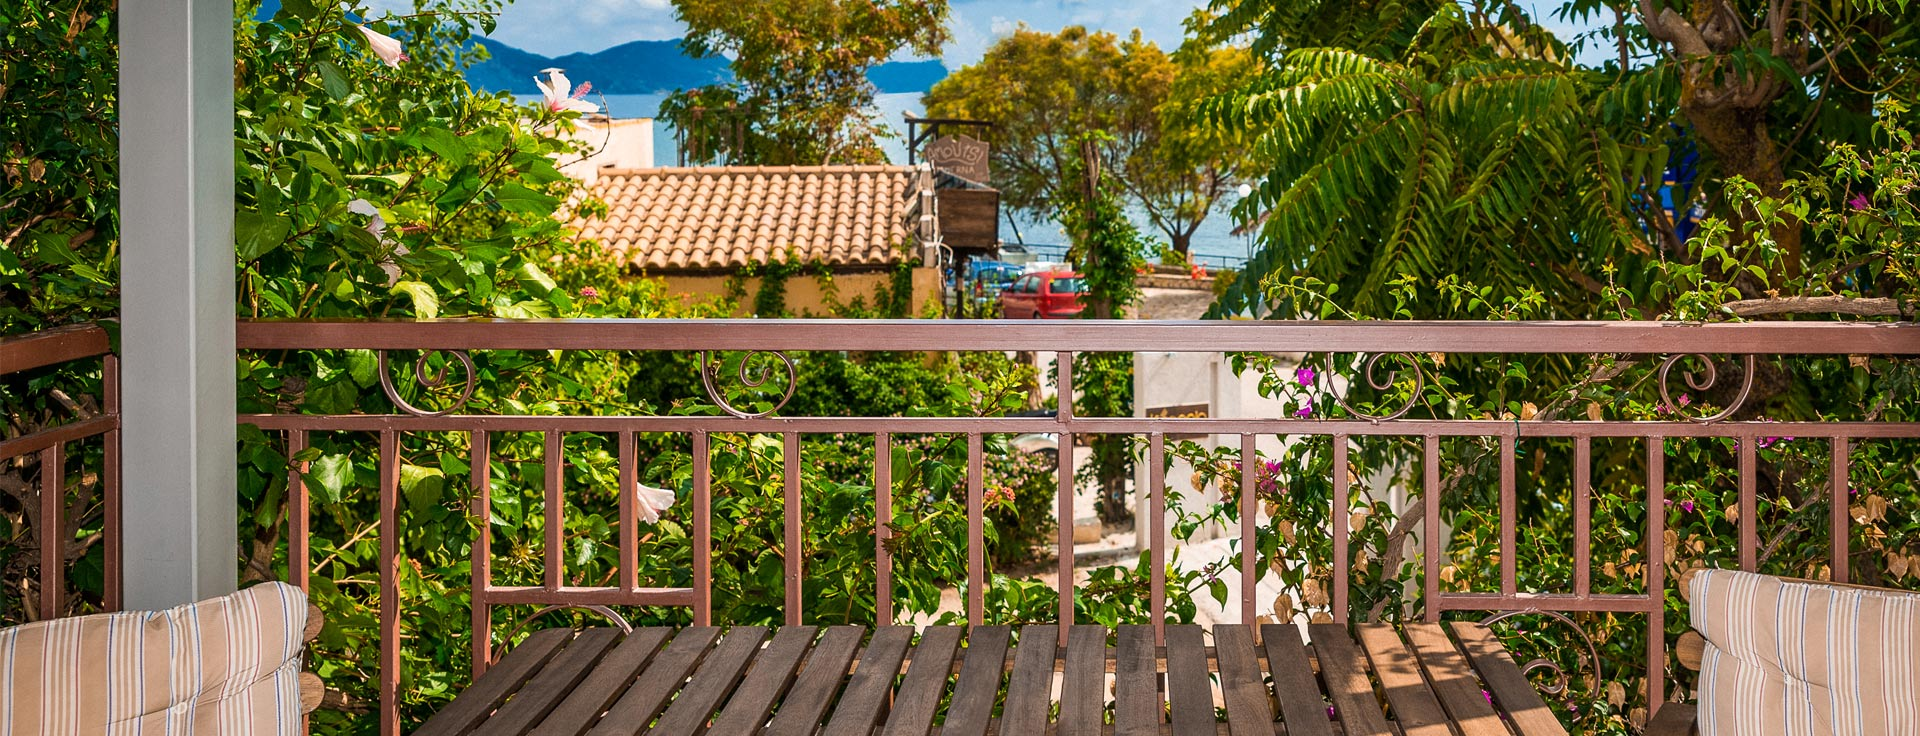 Balcony with sea view at Lemonia accommodations.